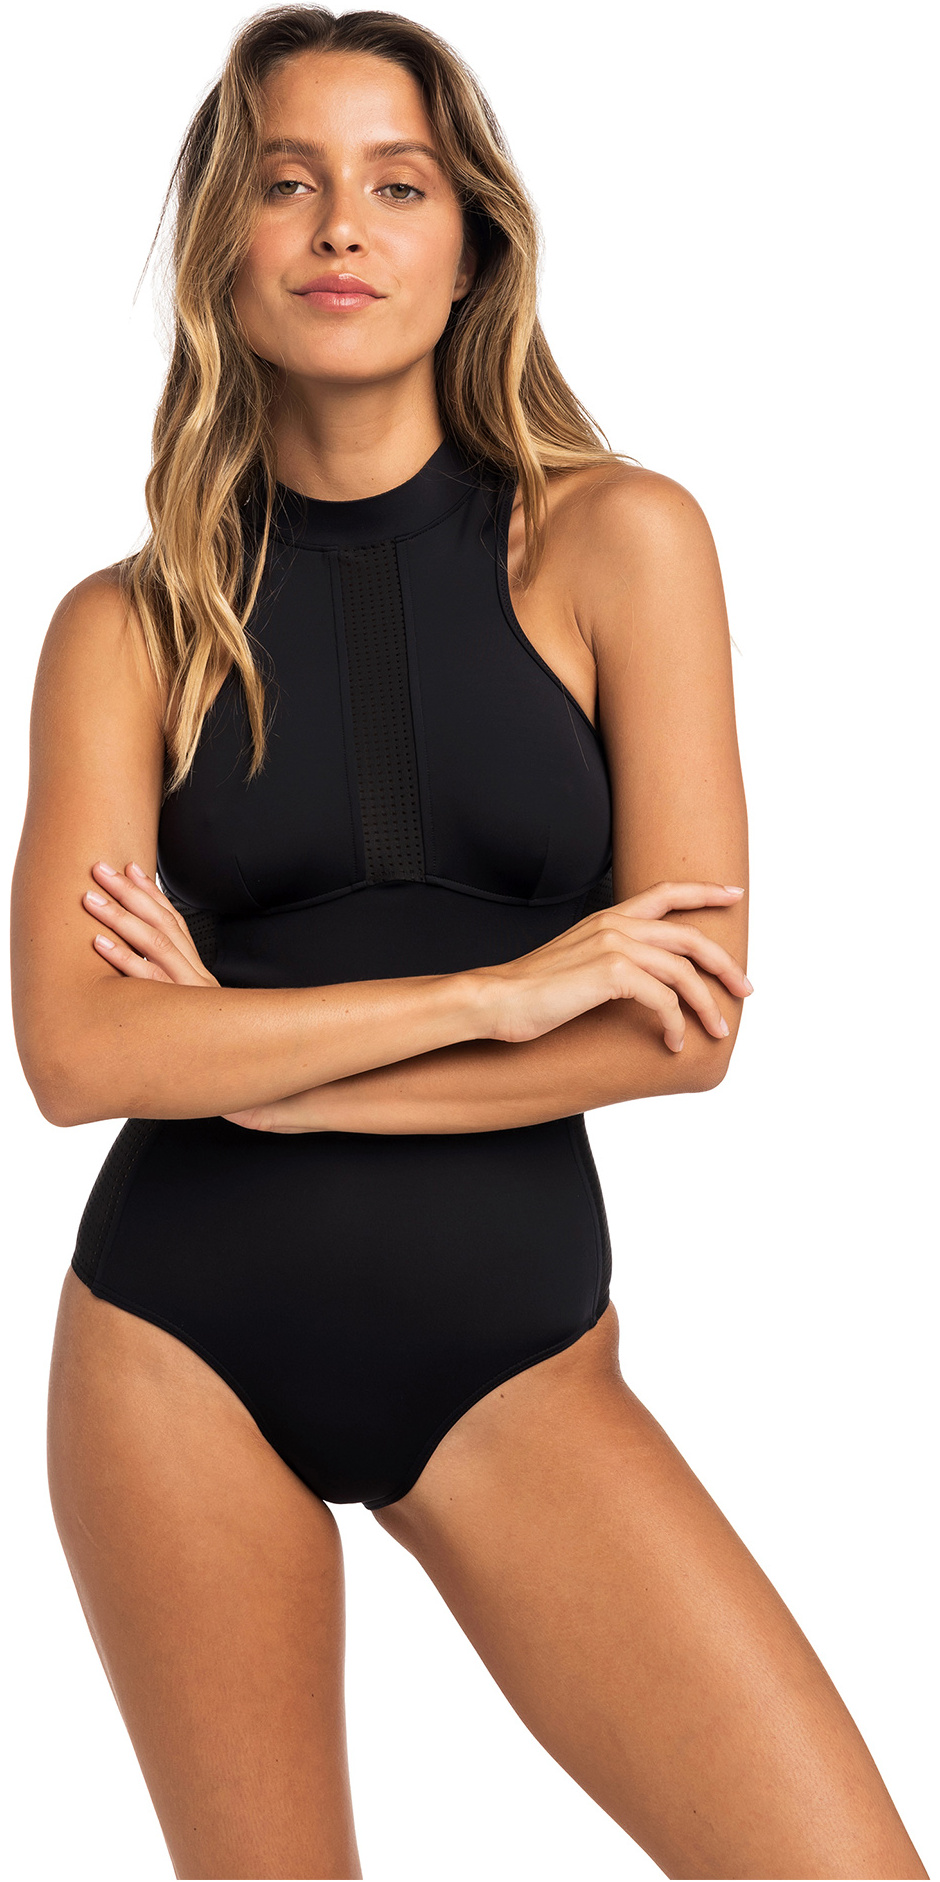 e23018ea3d 2019 Rip Curl Womens Mirage Ultimate One Piece Black Gsitq3 - Bikinis  Swimwear - Womens | Wetsuit Outlet